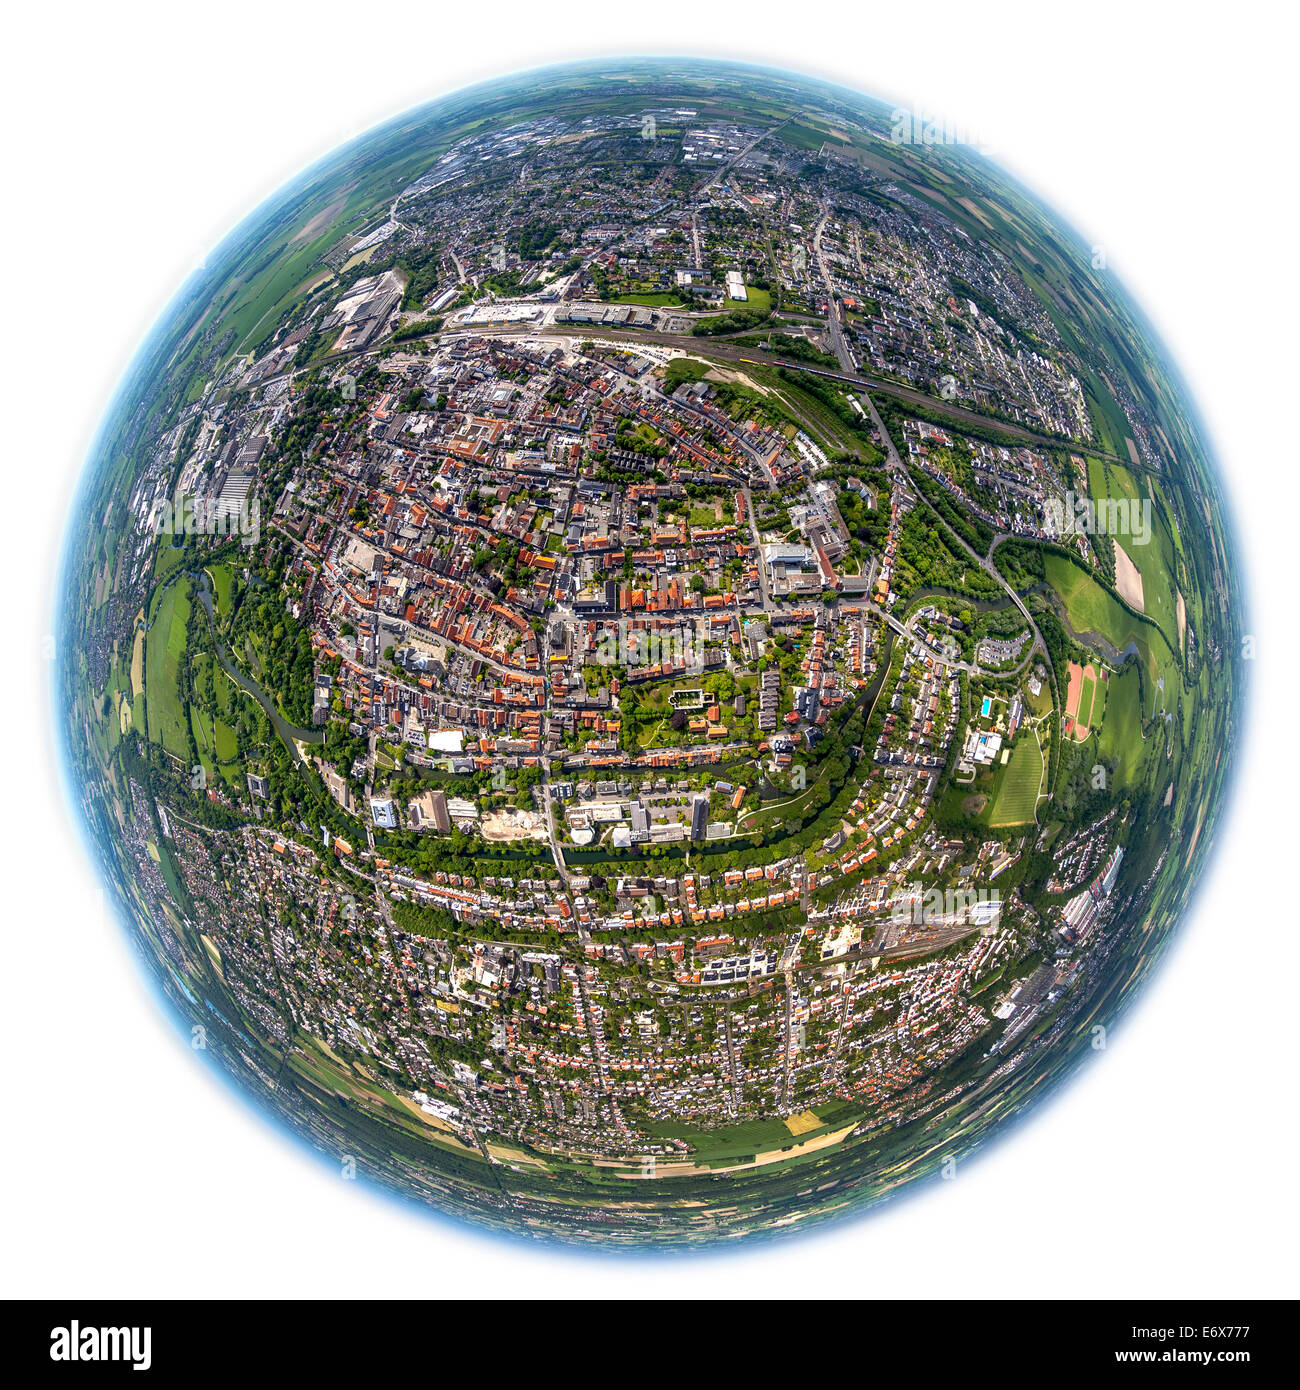 Aerial view, fisheye view, town centre of Lippstadt, North Rhine-Westphalia, Germany - Stock Image